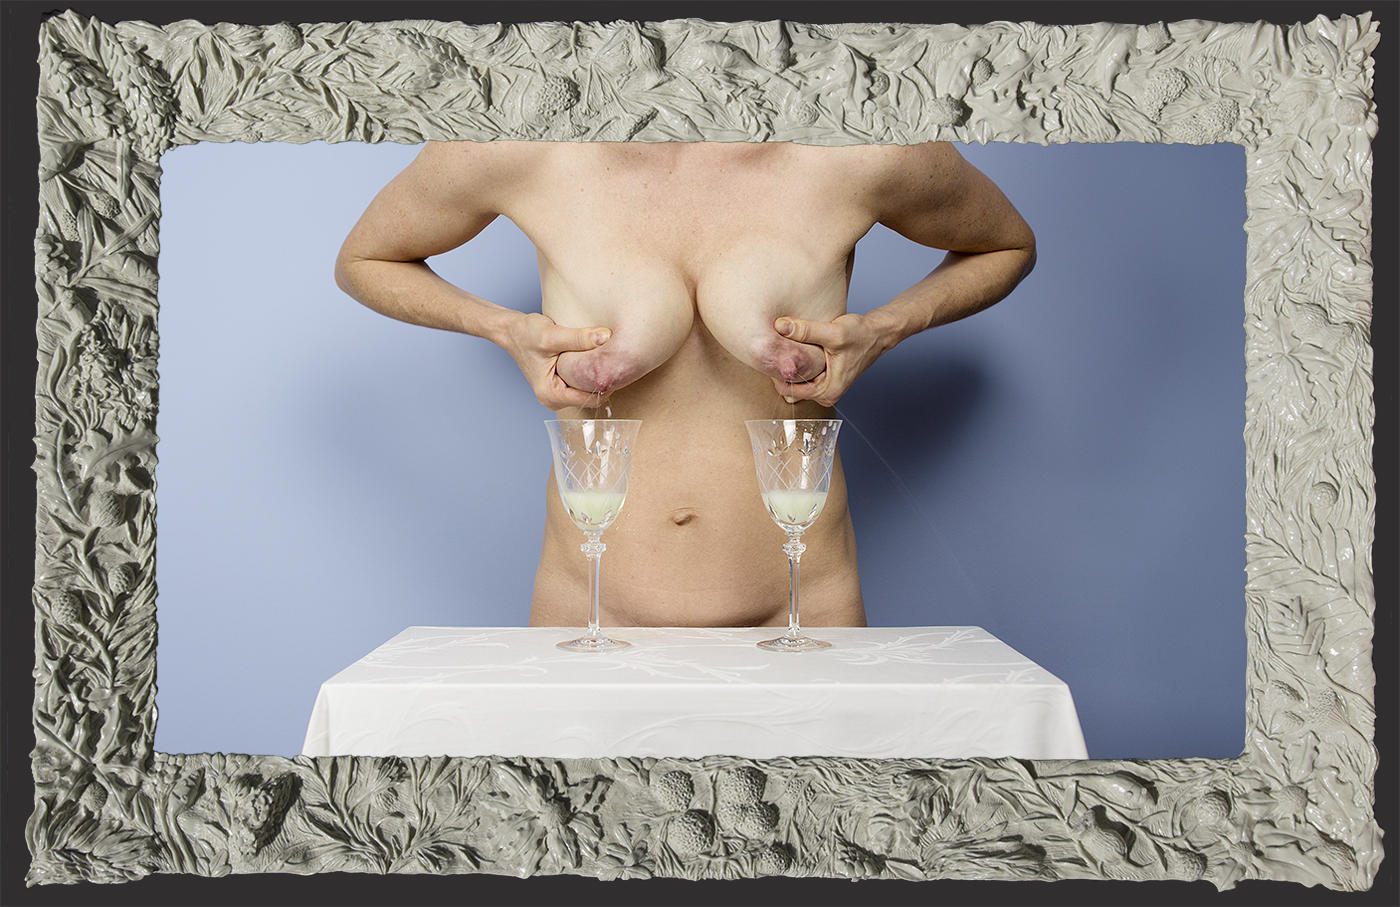 Asya Reznikov expresses breast milk into wine glasses for latest video project.